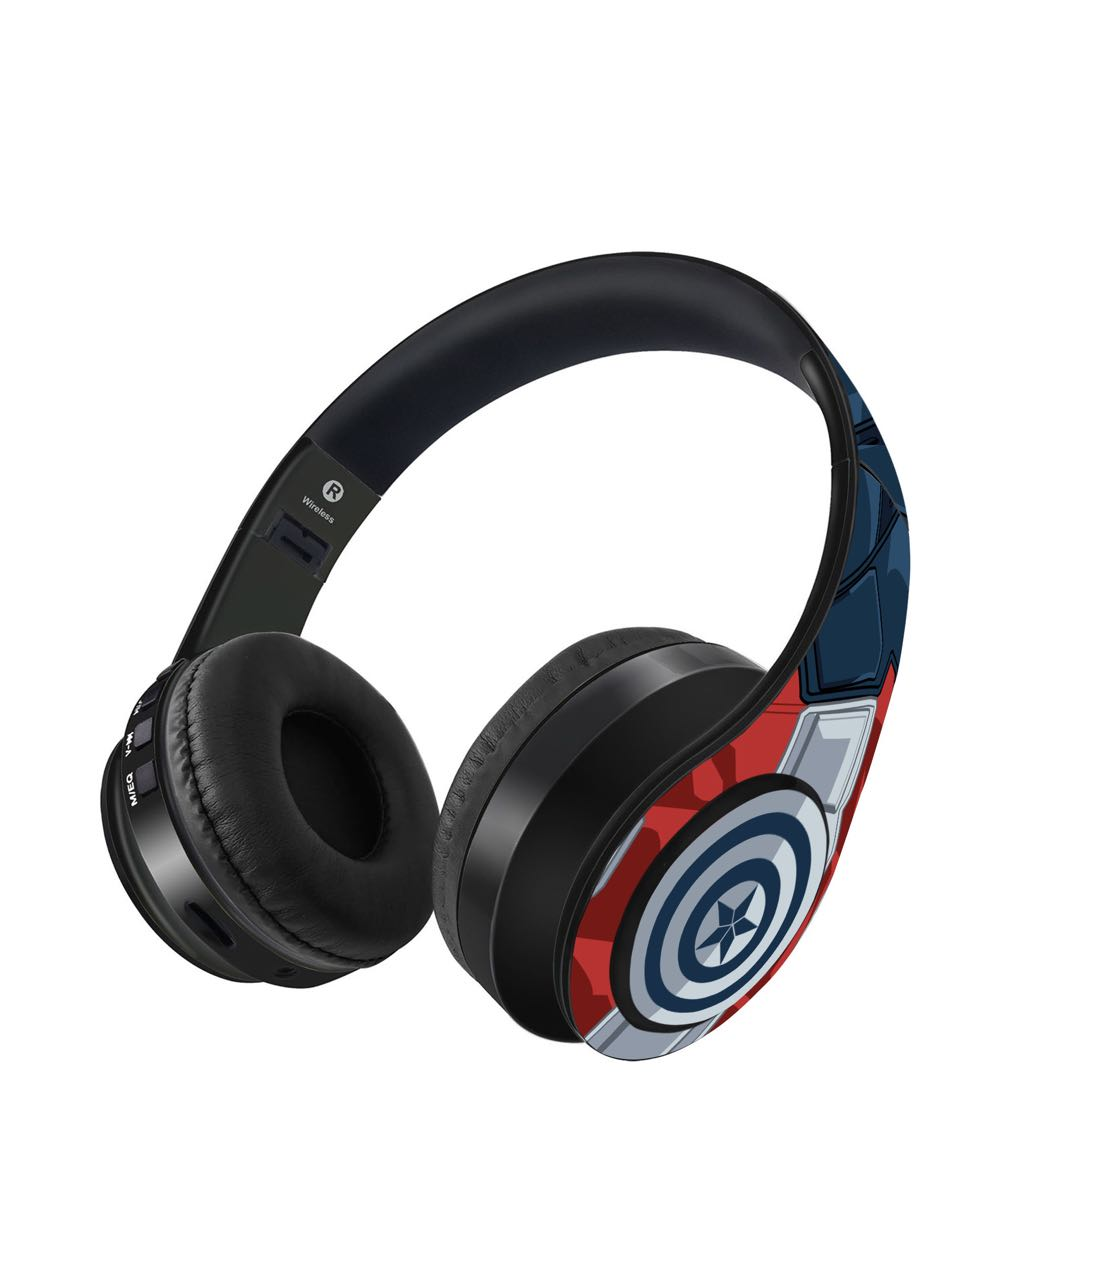 Suit up Captain - Decibel Wireless On Ear Headphones -Macmerise - India - www.superherotoystore.com